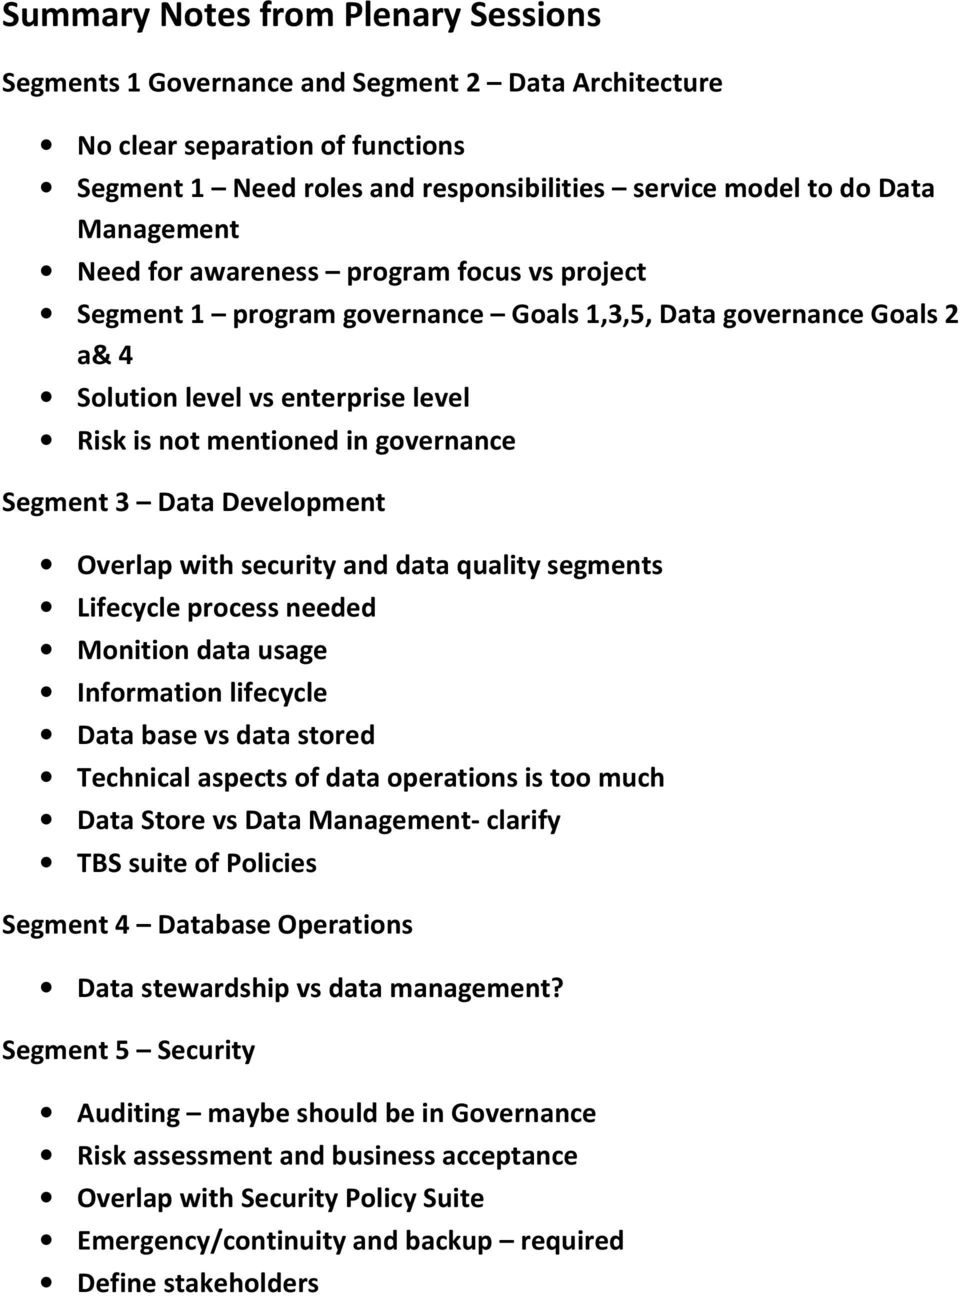 Segment 3 Data Development Overlap with security and data quality segments Lifecycle process needed Monition data usage Information lifecycle Data base vs data stored Technical aspects of data